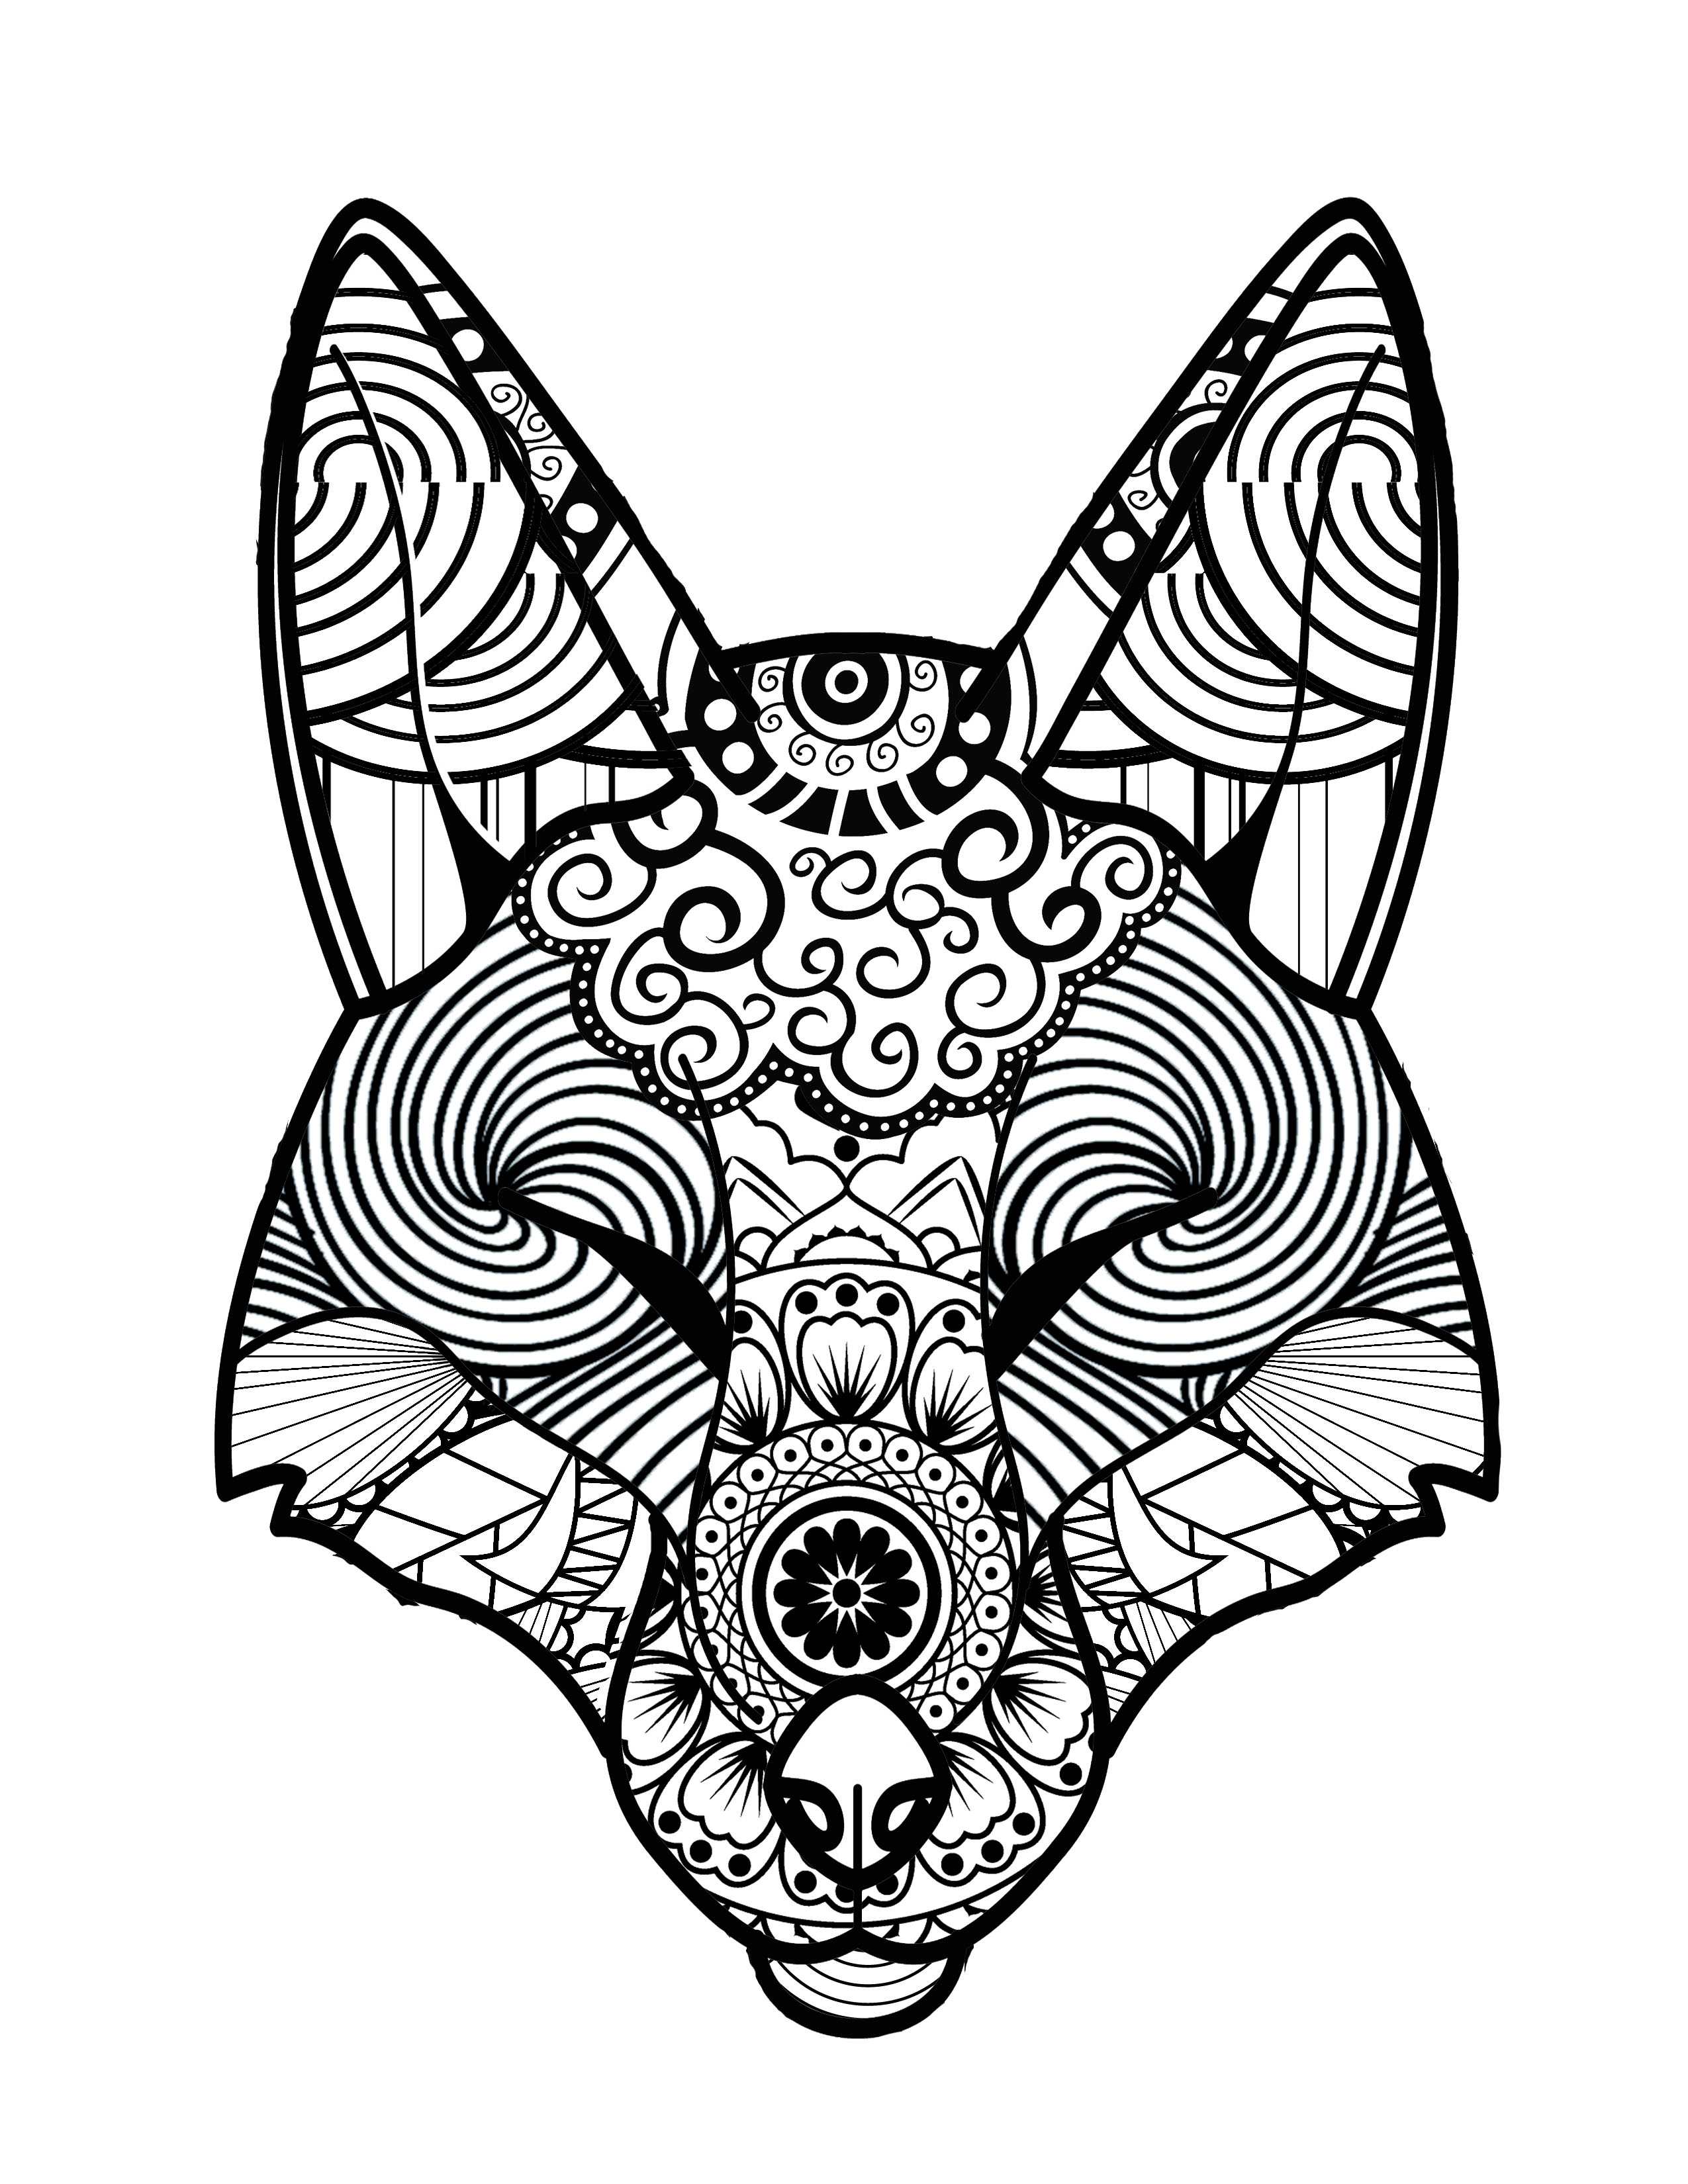 2550x3300 The Meditative Practice Of Coloring With This Animals Relax, Which